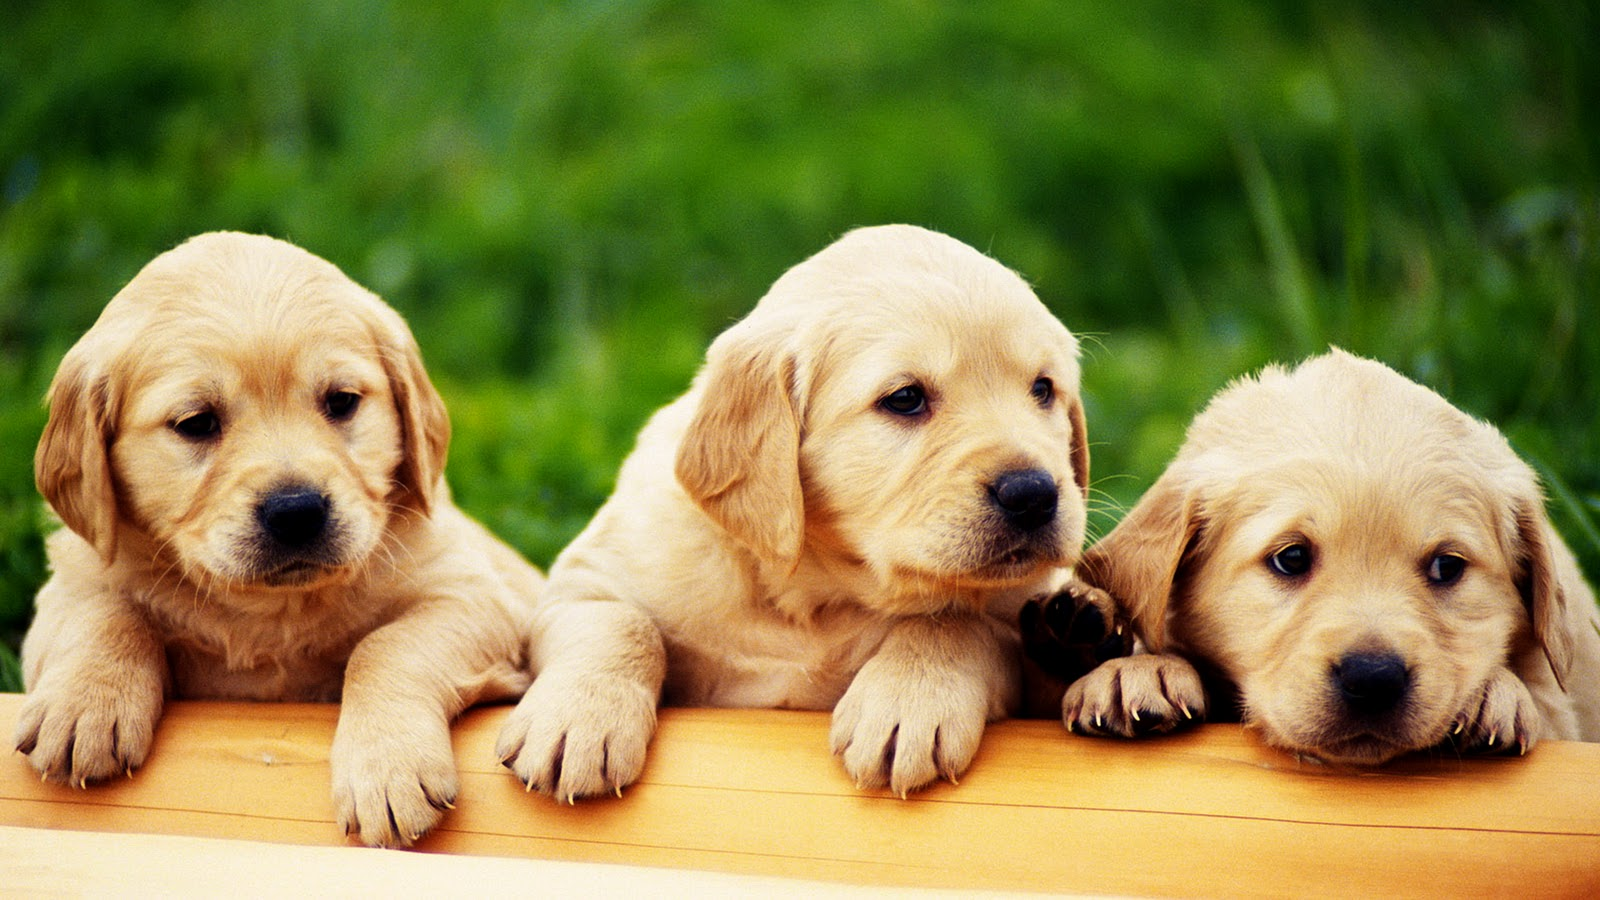 cute puppies hd wallpapers collection desktop wallpaper